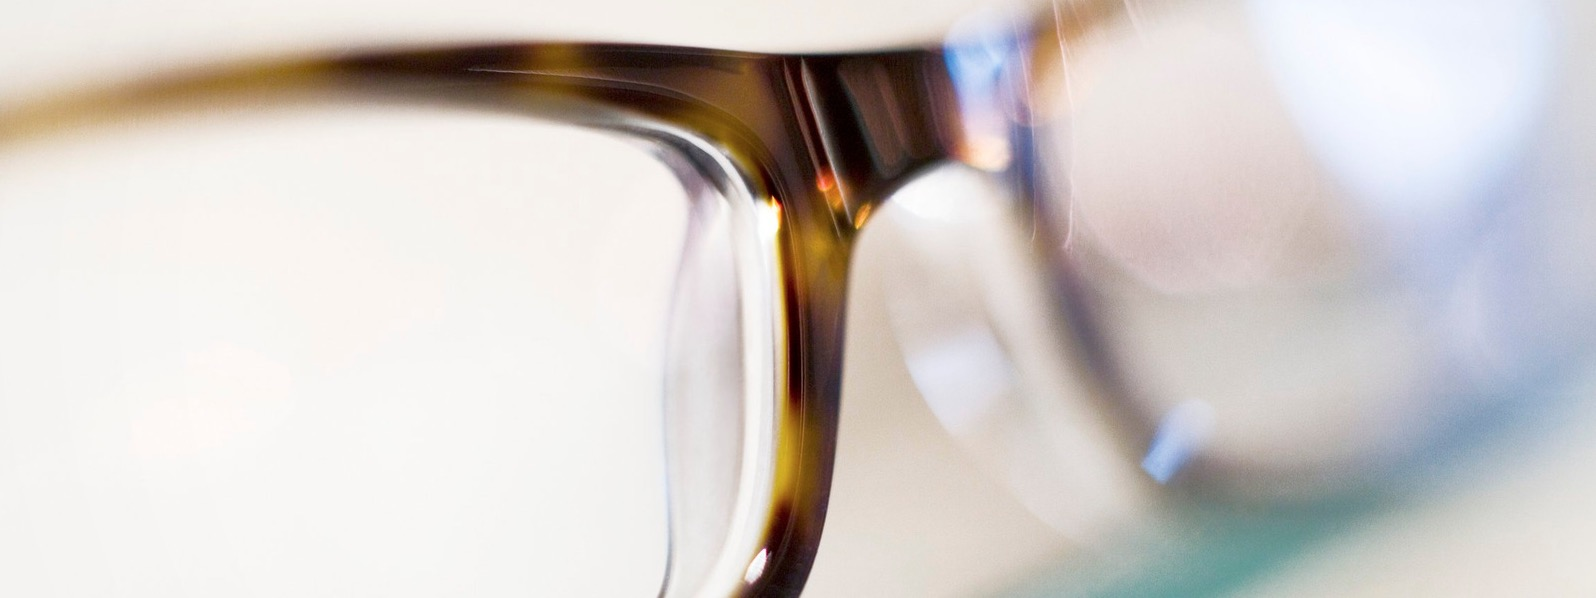 How To Adjust Your Glasses At Home